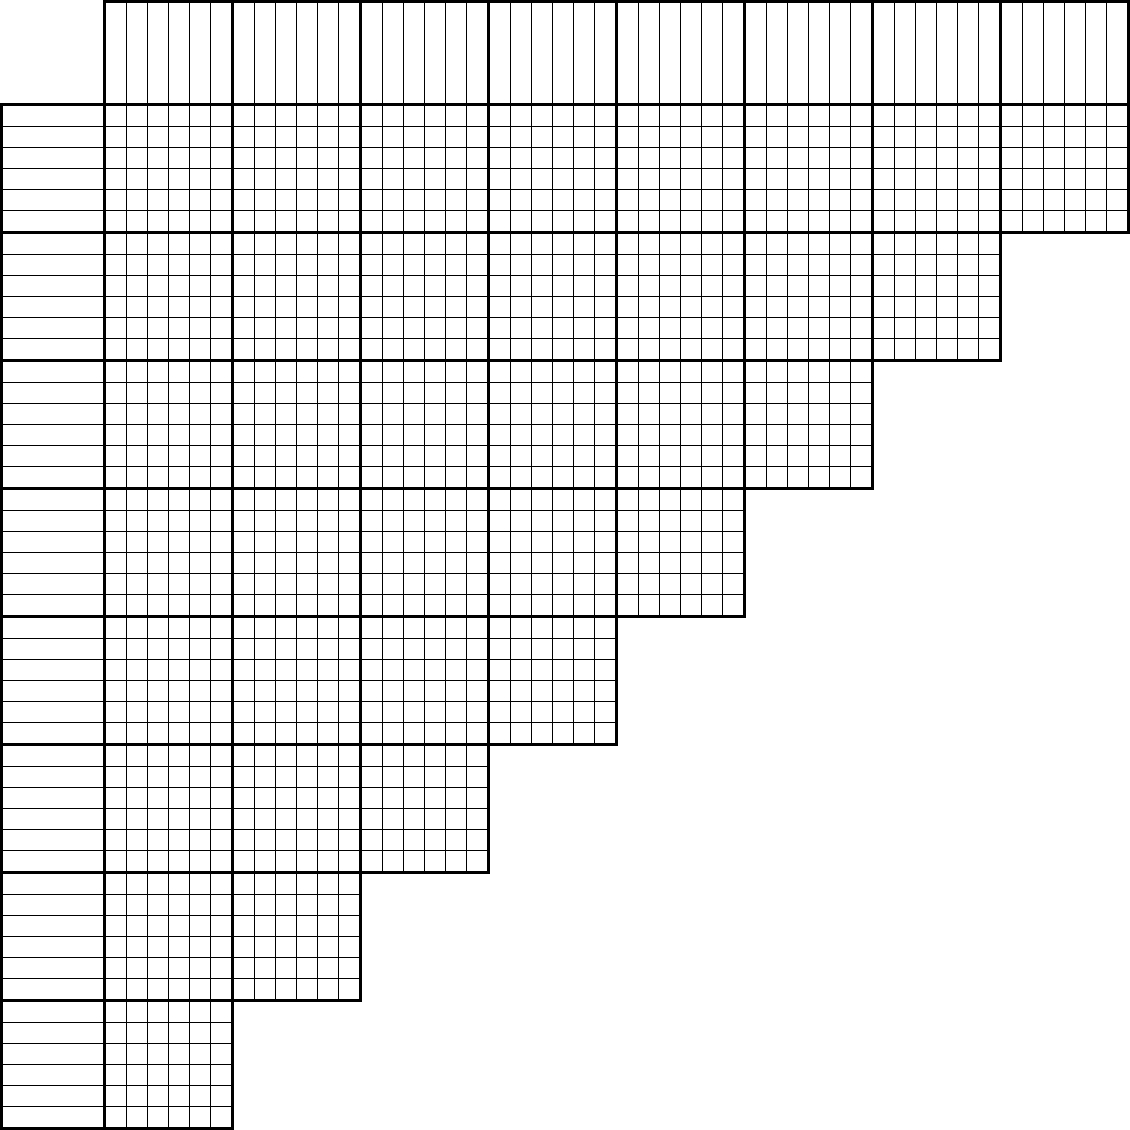 Tlstyer - Logic Puzzle Grids - Printable Logic Puzzle Grid Blank